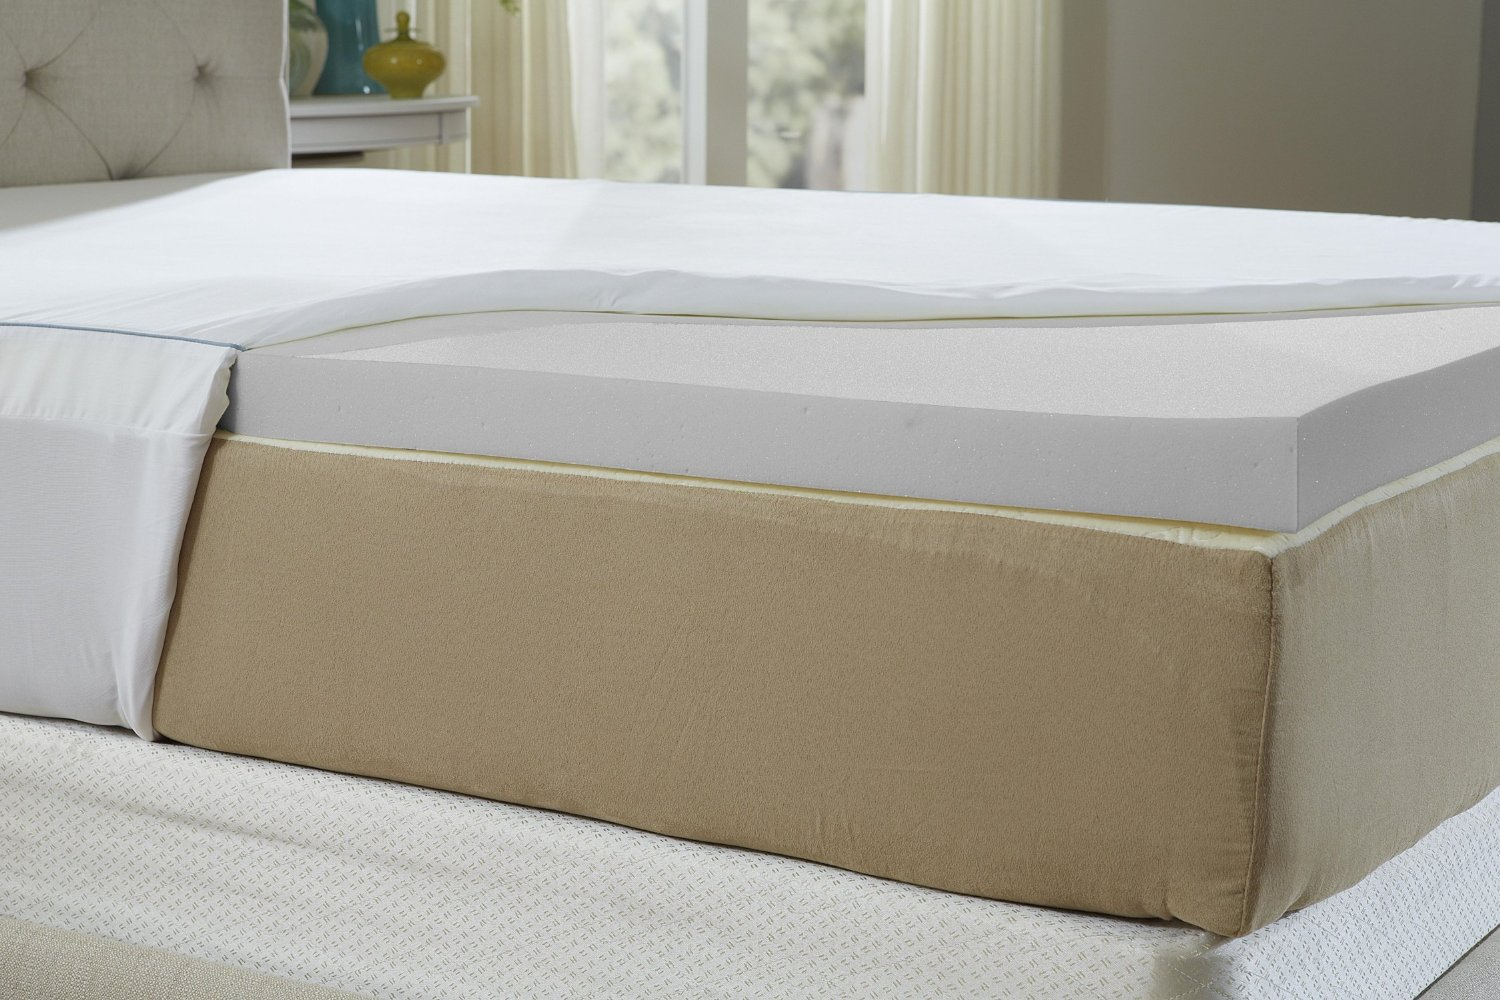 Buy Mattress Topper The Cool Iq 2 5 Inch Memory Foam Topper Smart Buy Zen